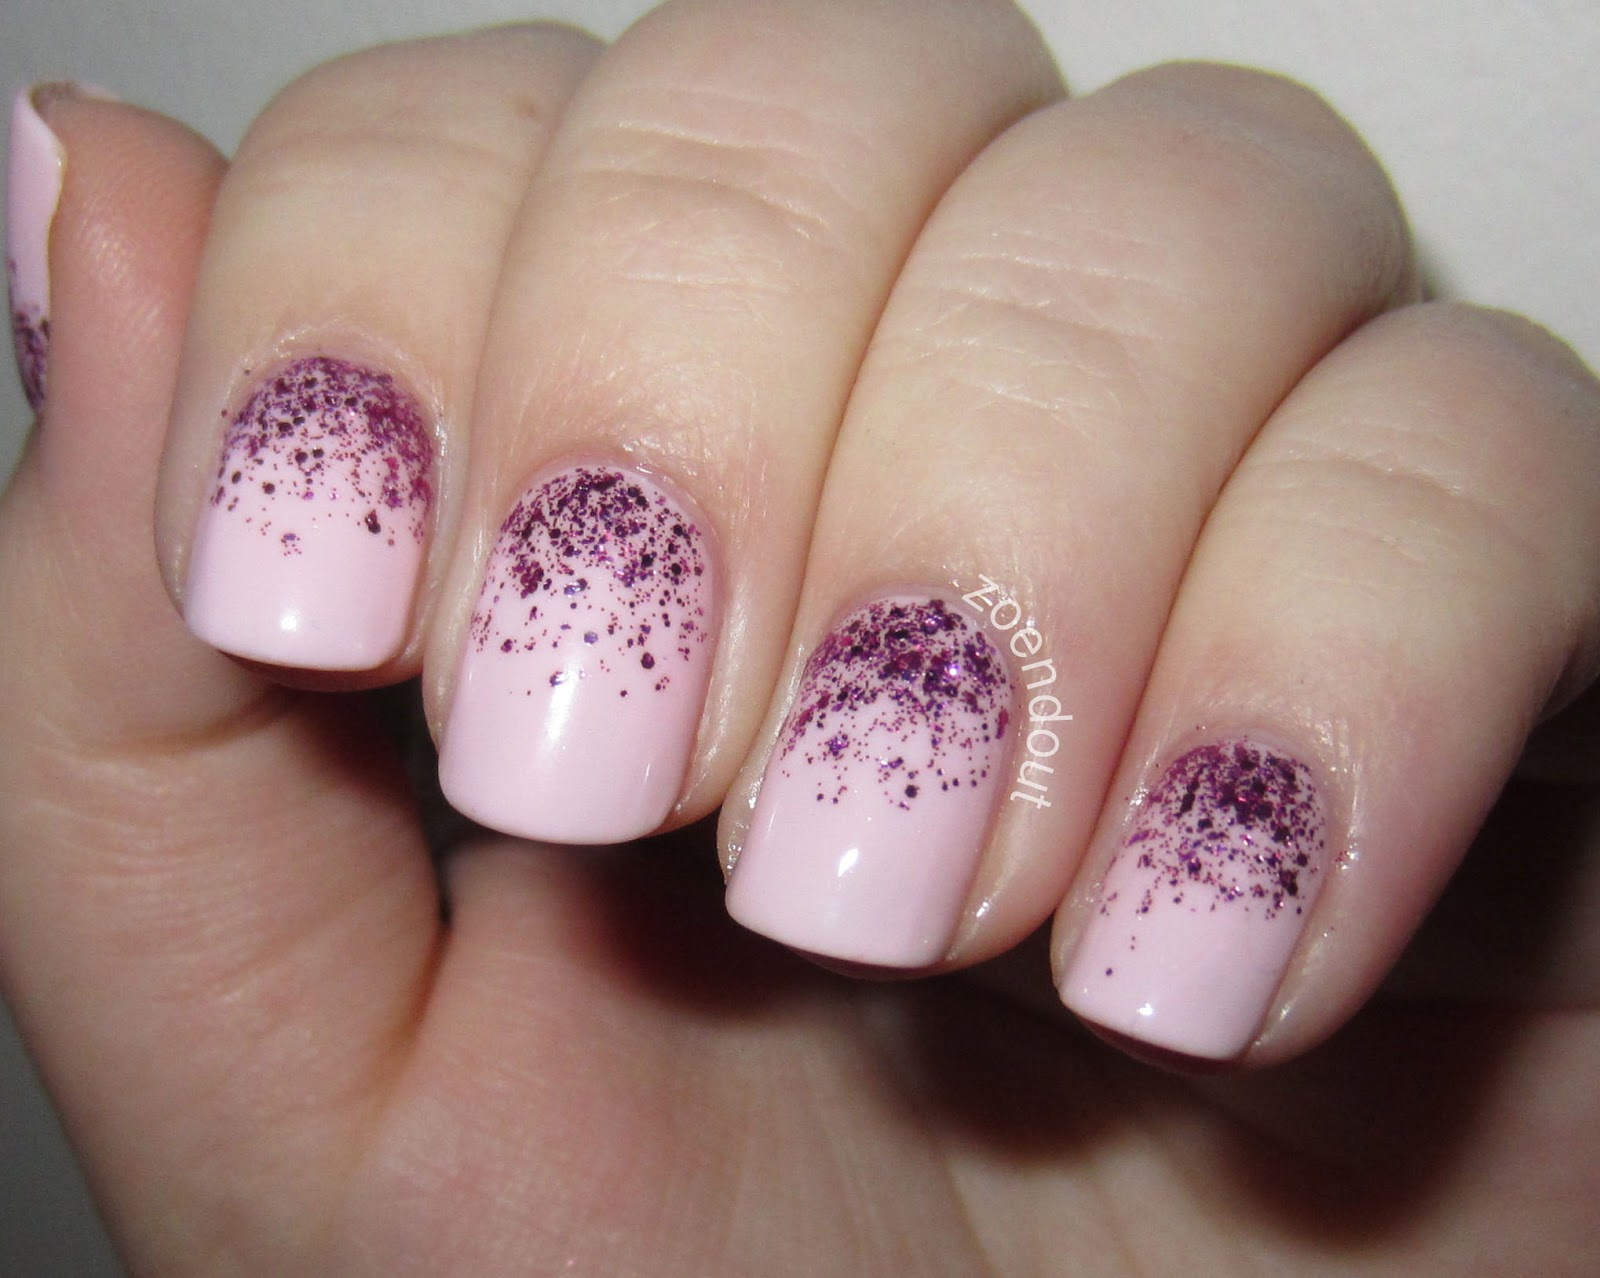 Zoendout Nails: Girly Glitter Gradient